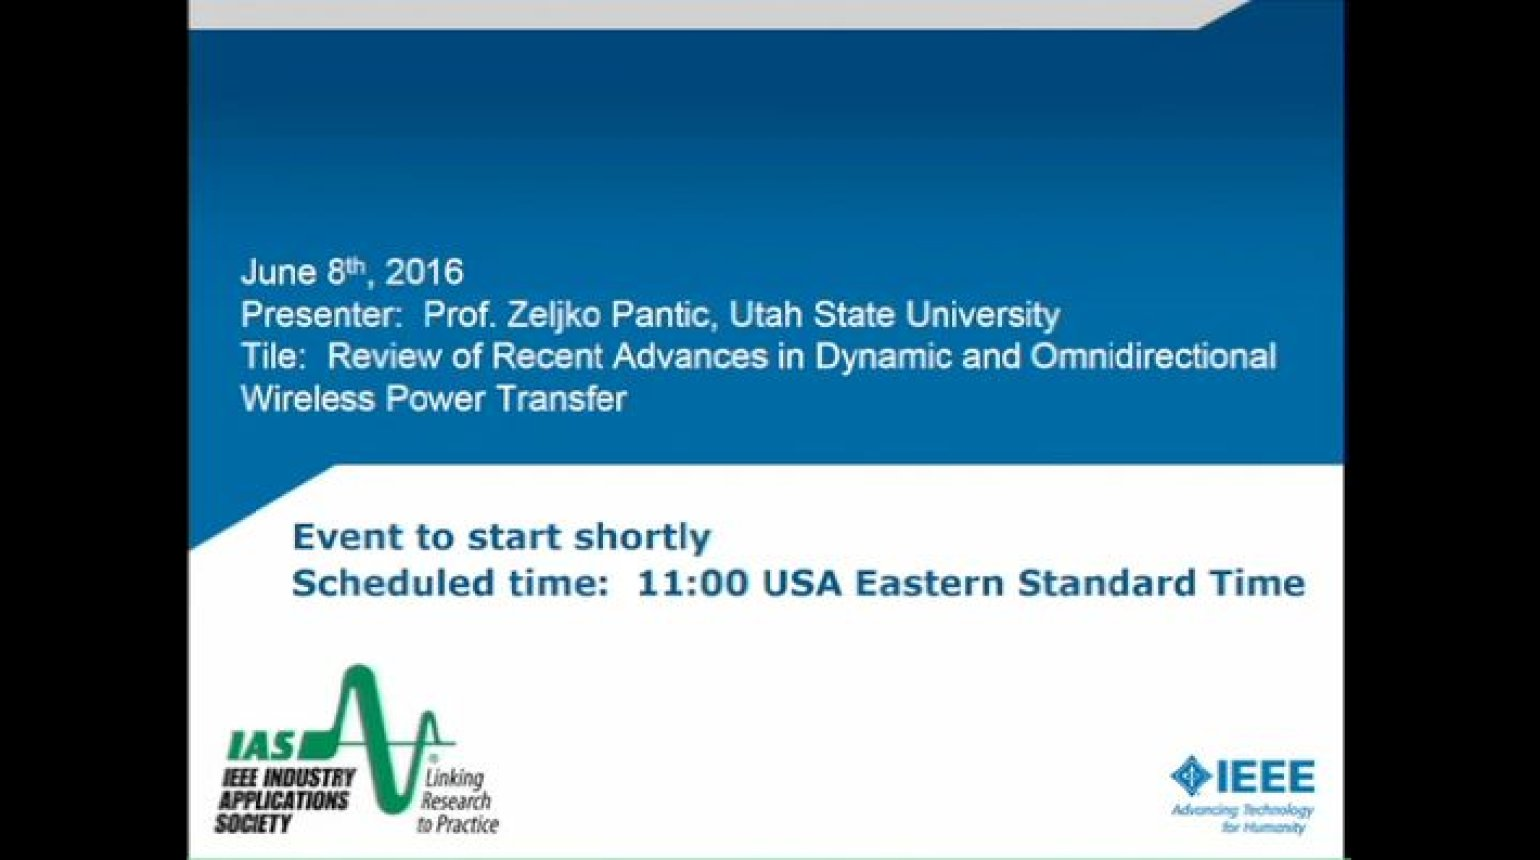 IAS Webinar Series - Review of Recent Advances in Dynamics and Omnidirectional Wireless Power Transfer